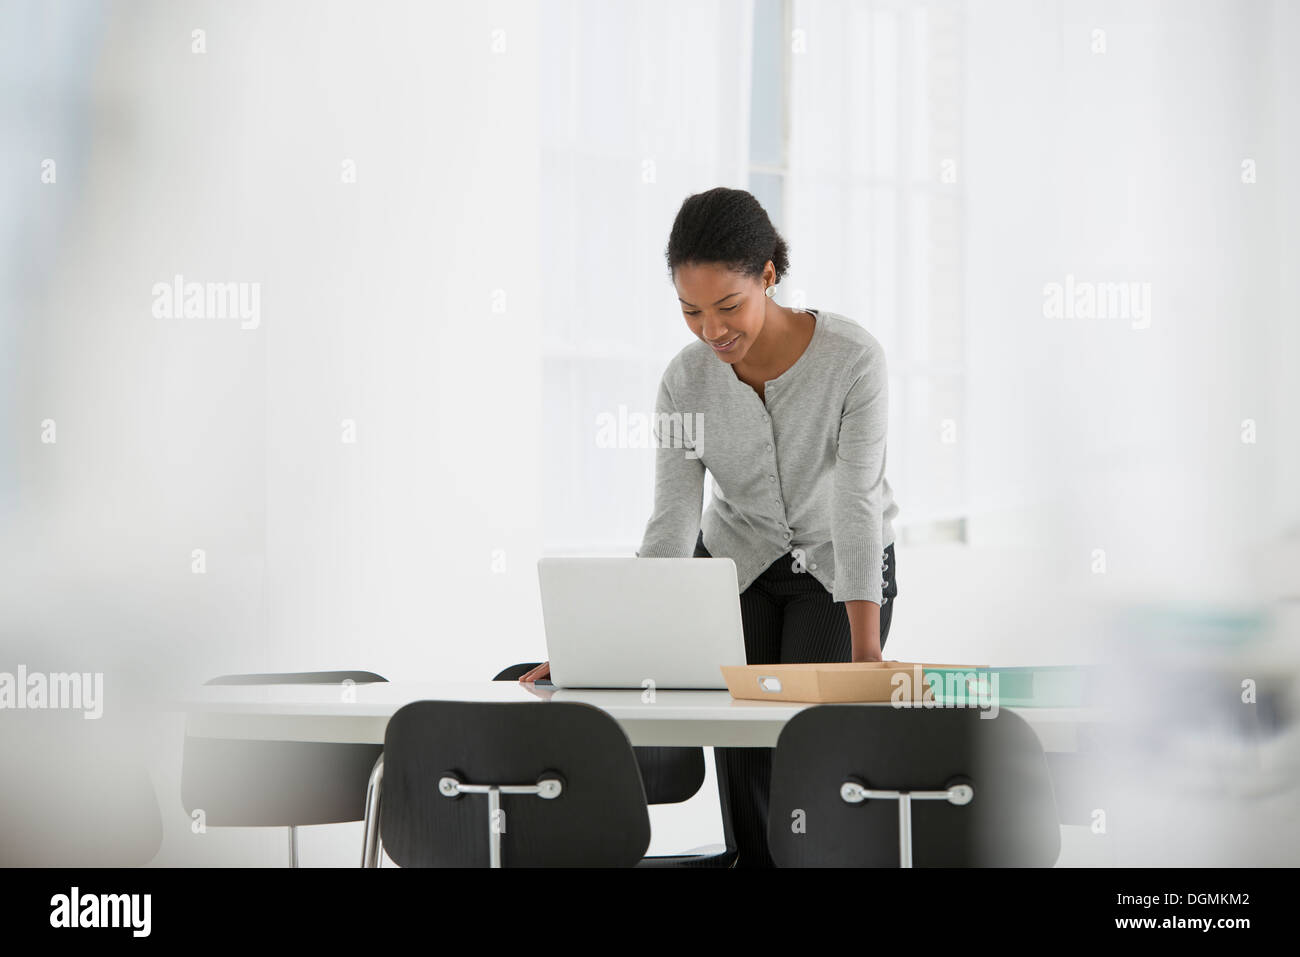 Business. A woman leaning over a desk using a laptop computer. - Stock Image